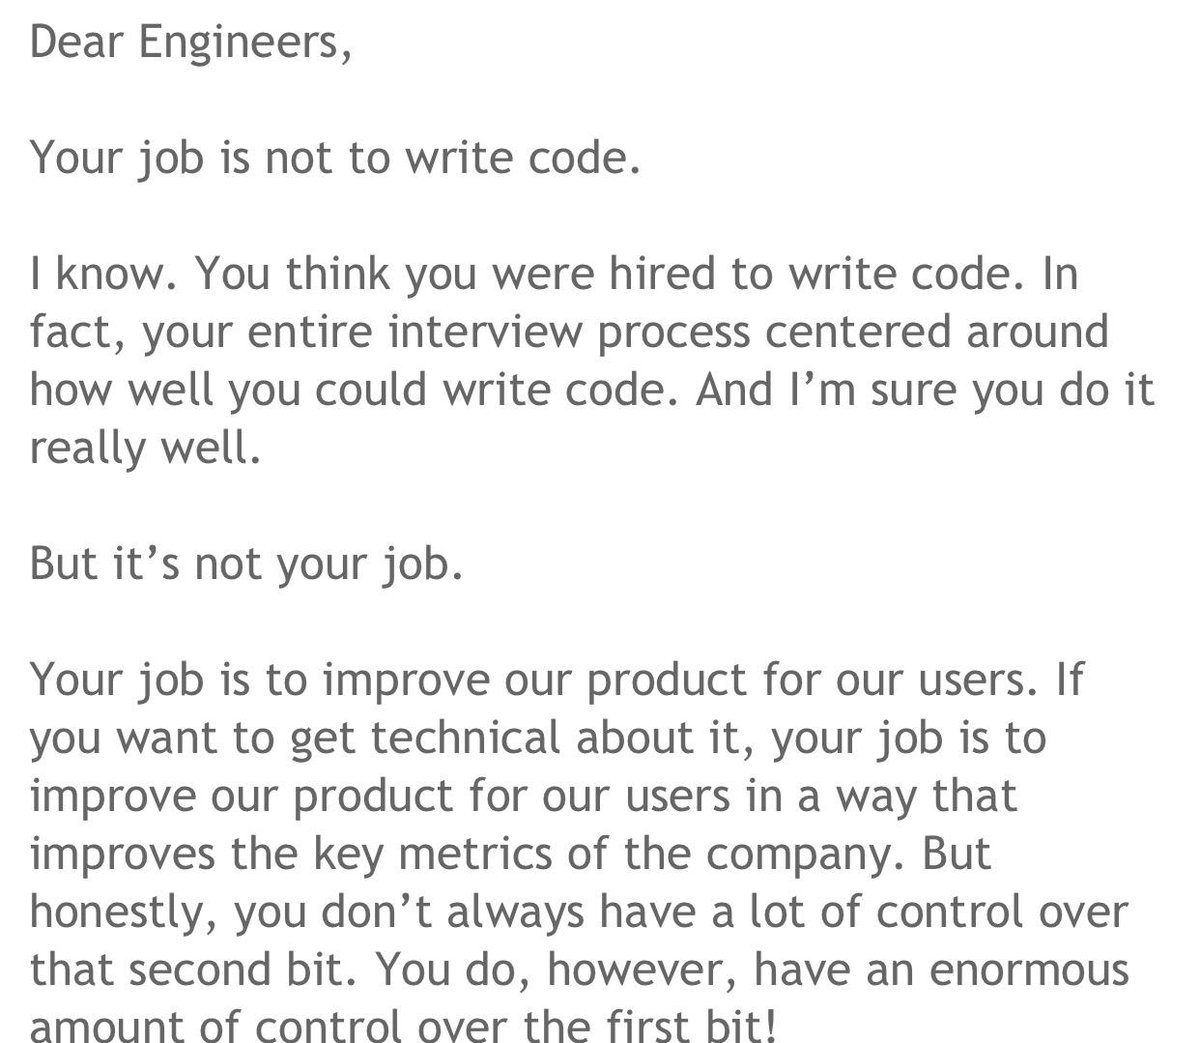 "I used to preach this. ""Engineers: Your job is to help the company grow...not write code."" http://t.co/oahr4LWVg3 http://t.co/tiK30hn04f"